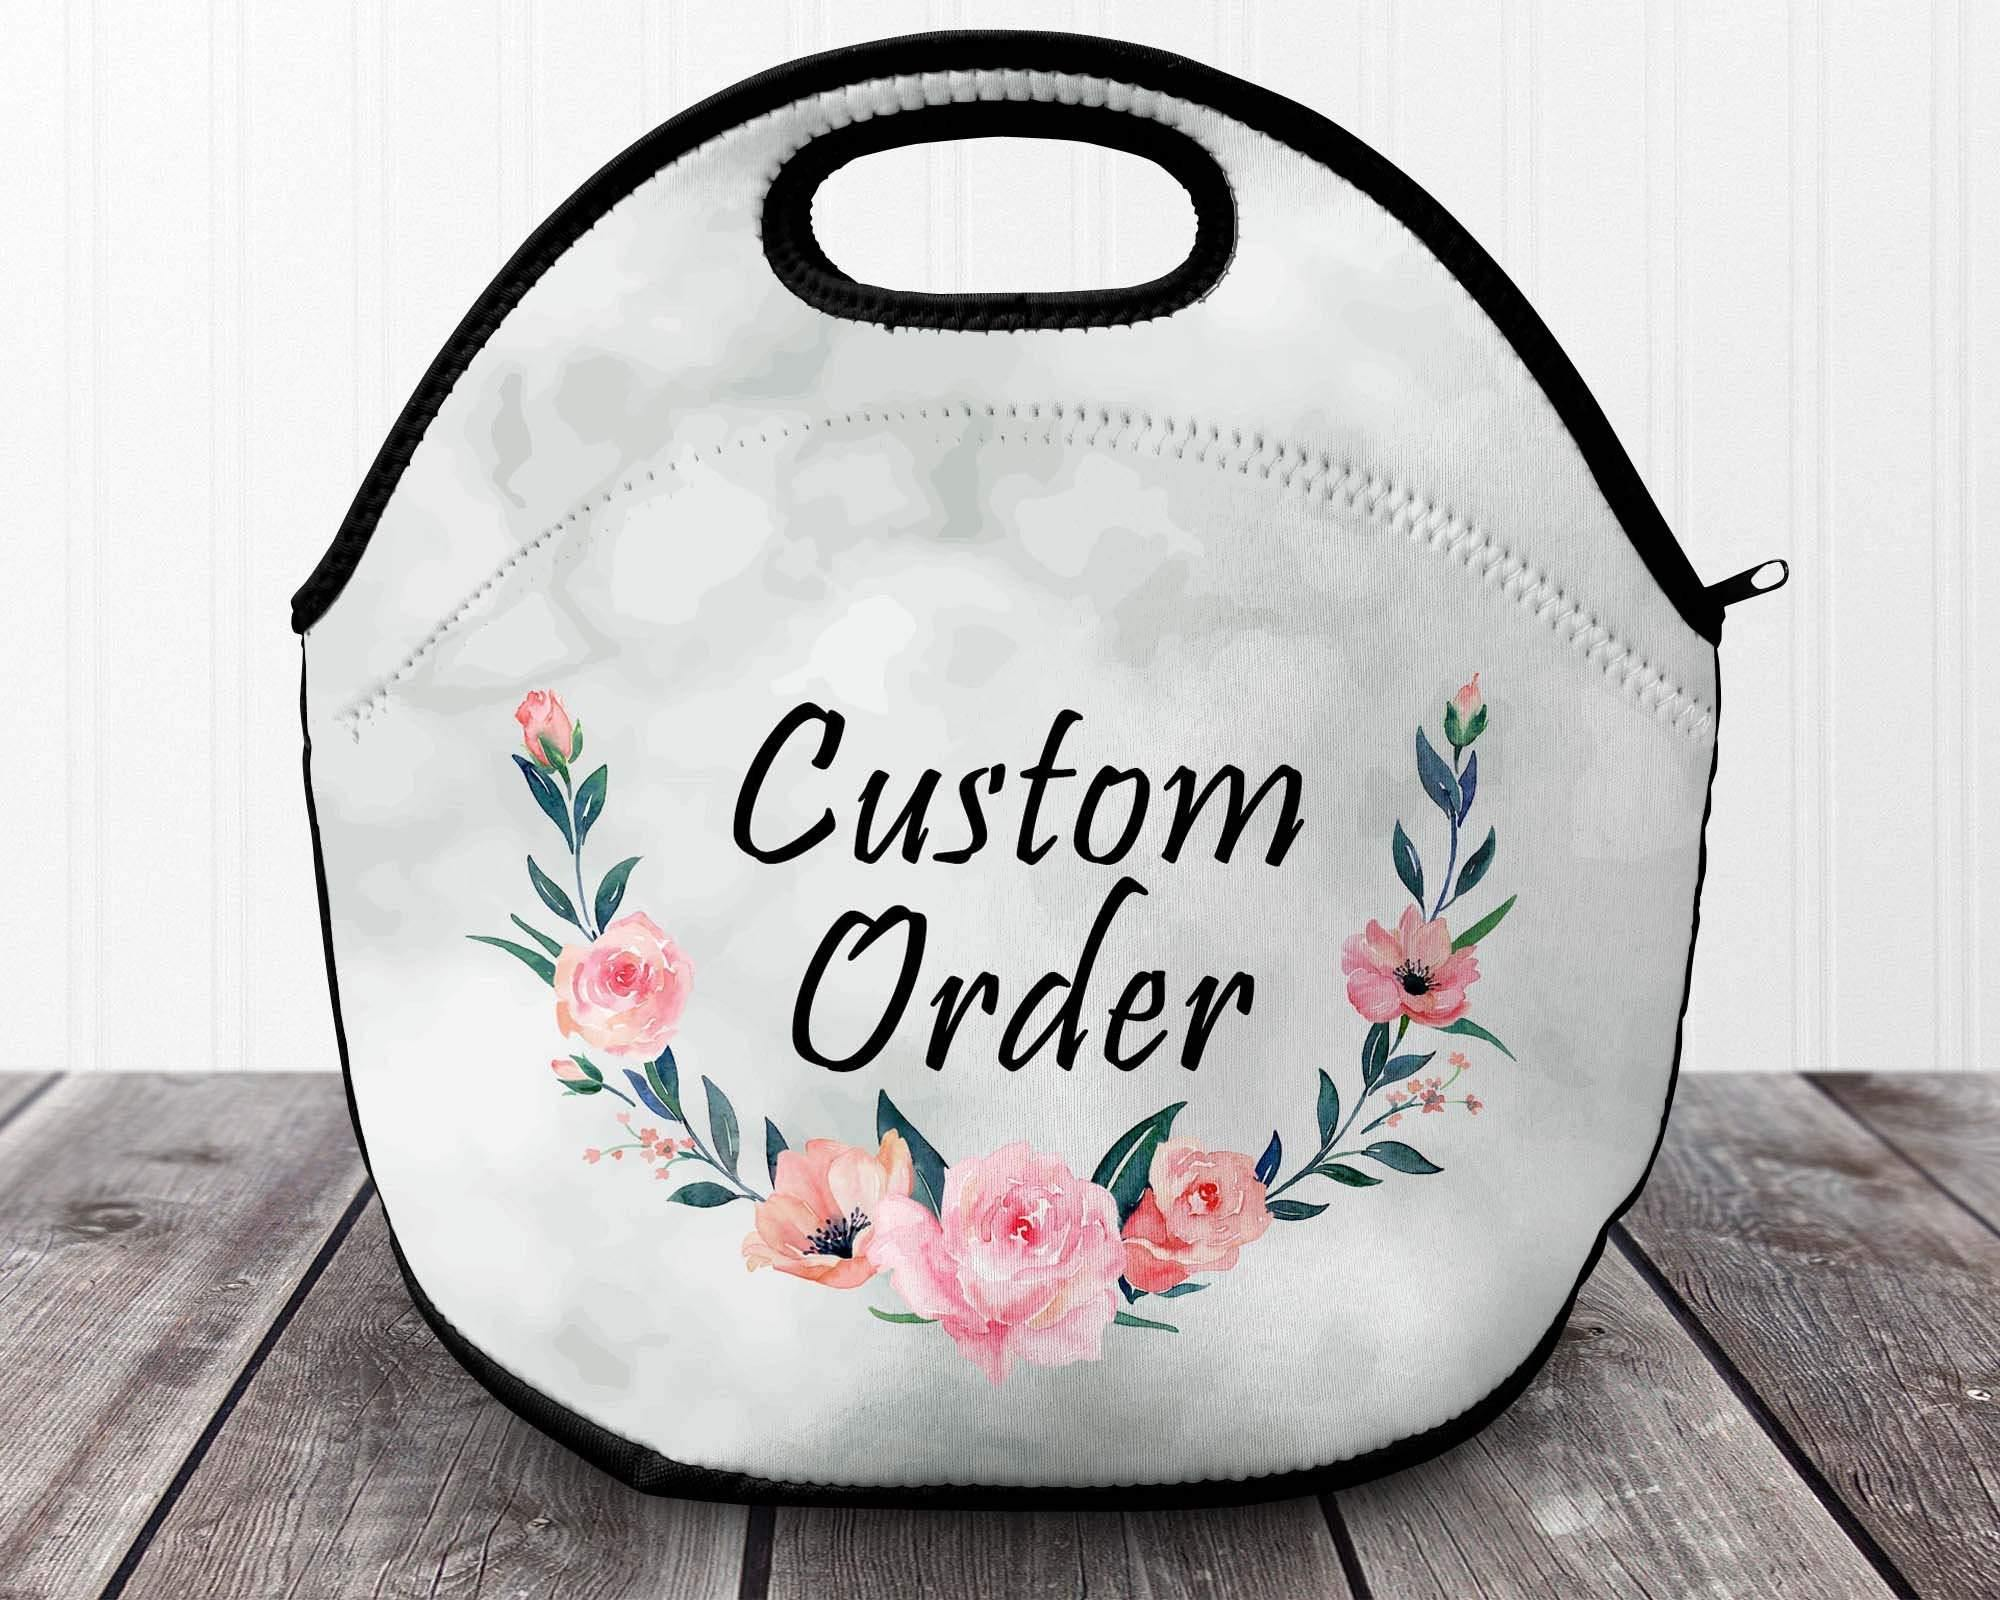 Lunch Bags & Boxes - Personalized Lunch Bags | Custom Order - This & That Solutions